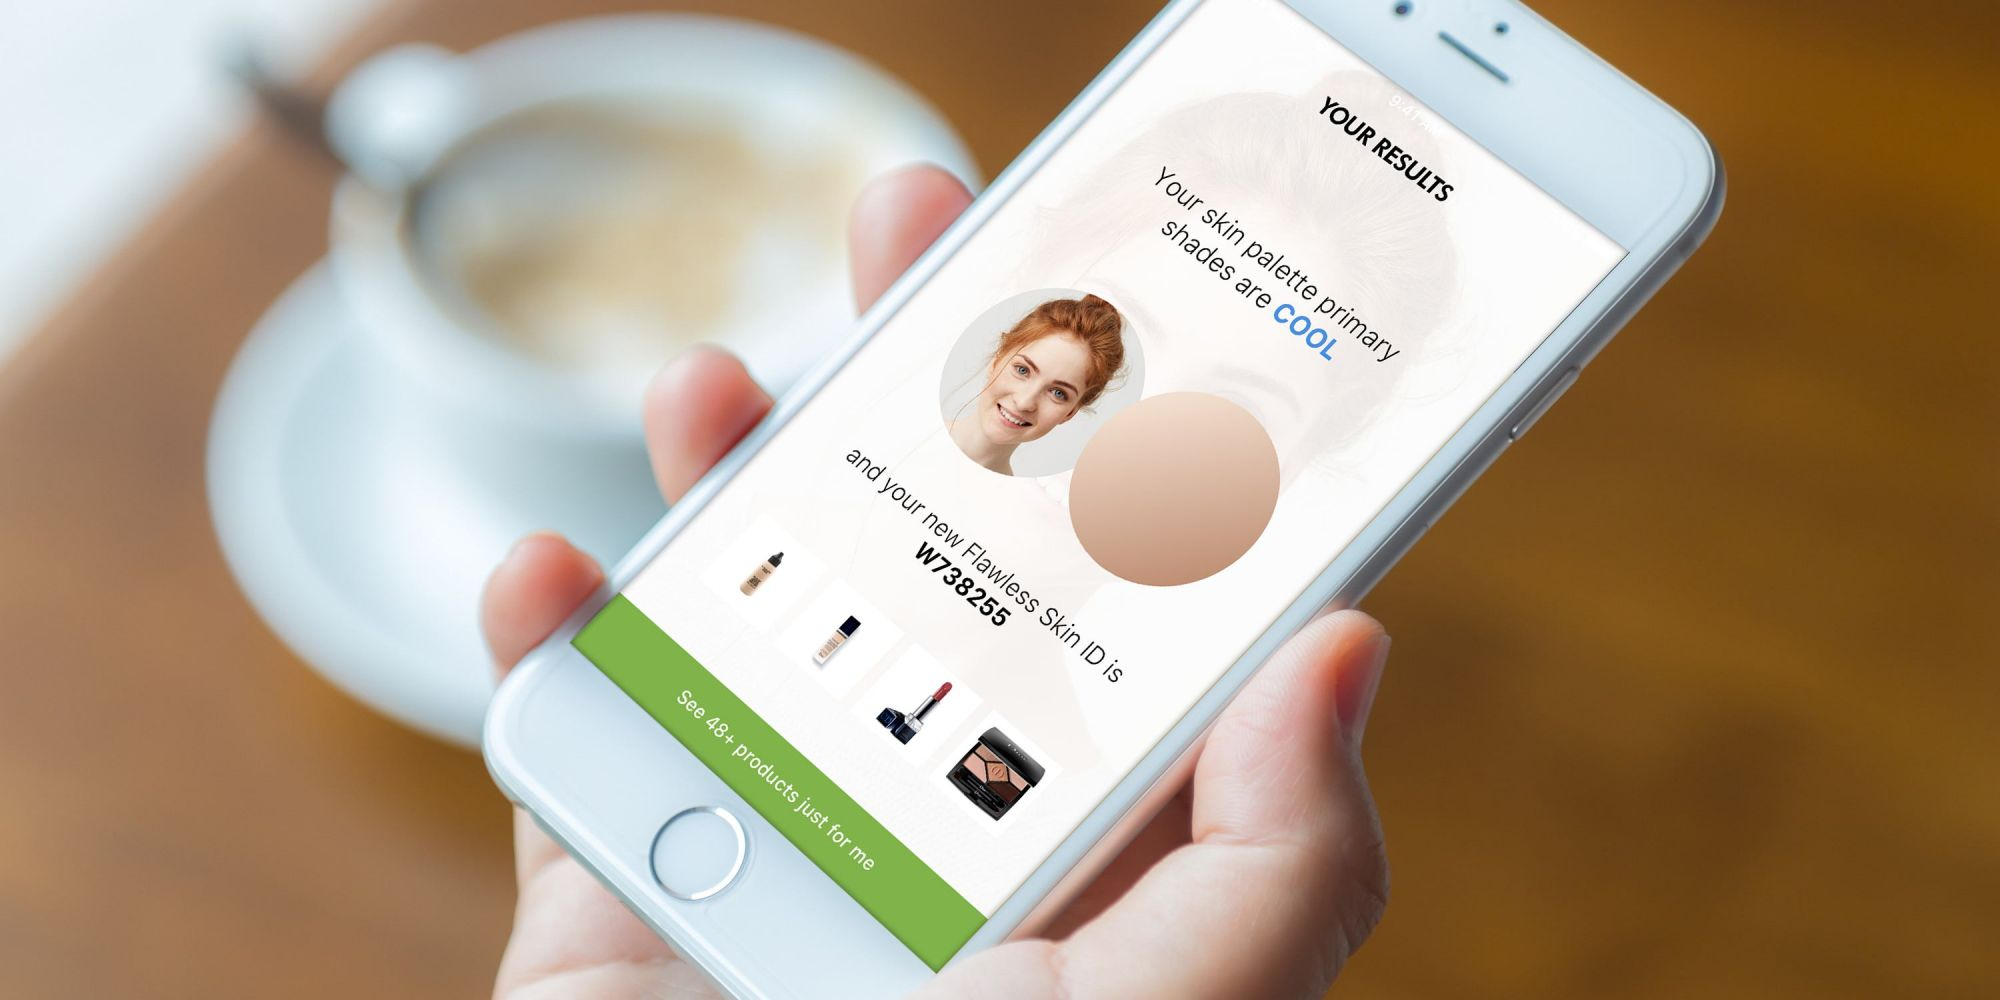 Want The Right Beauty Product For You? MIME Can Help Using Selfies